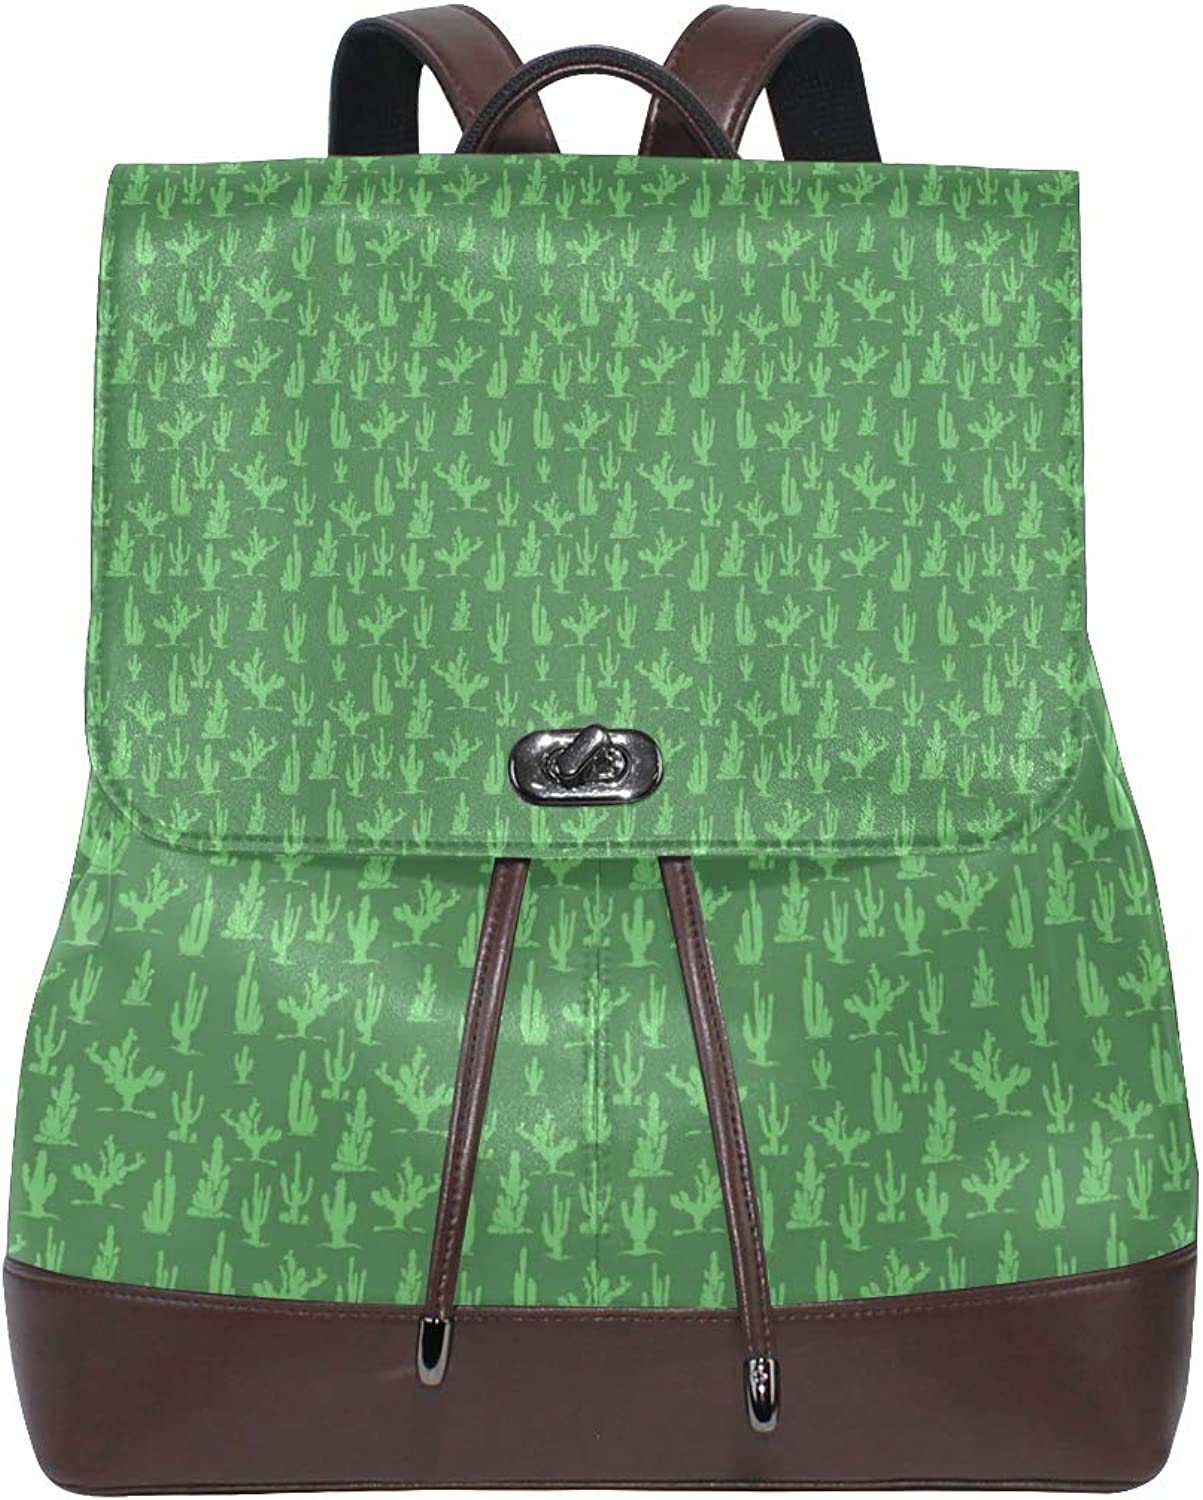 Leather Green Cactus Silhouette Backpack Daypack Bag Women